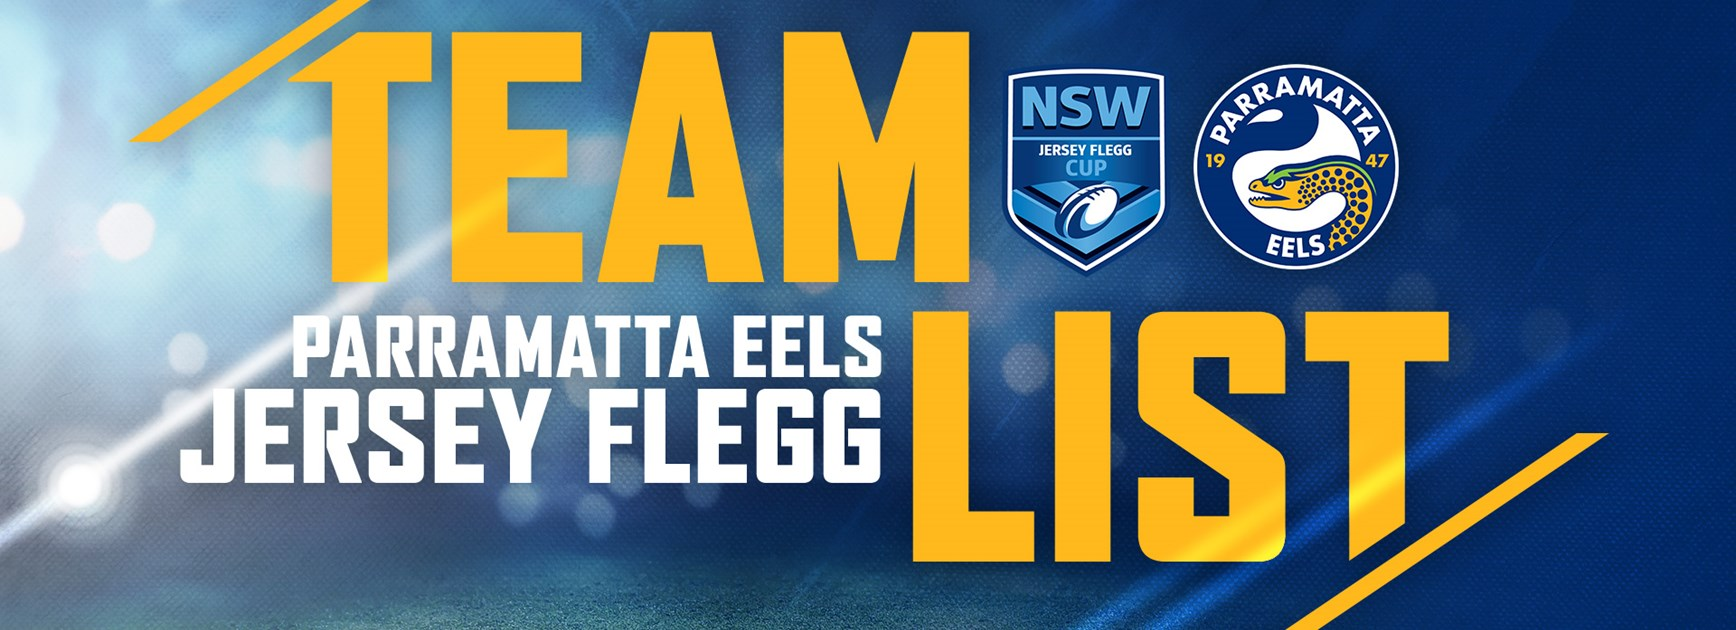 Eels Jersey Flegg v Sharks, Round 13 Team List